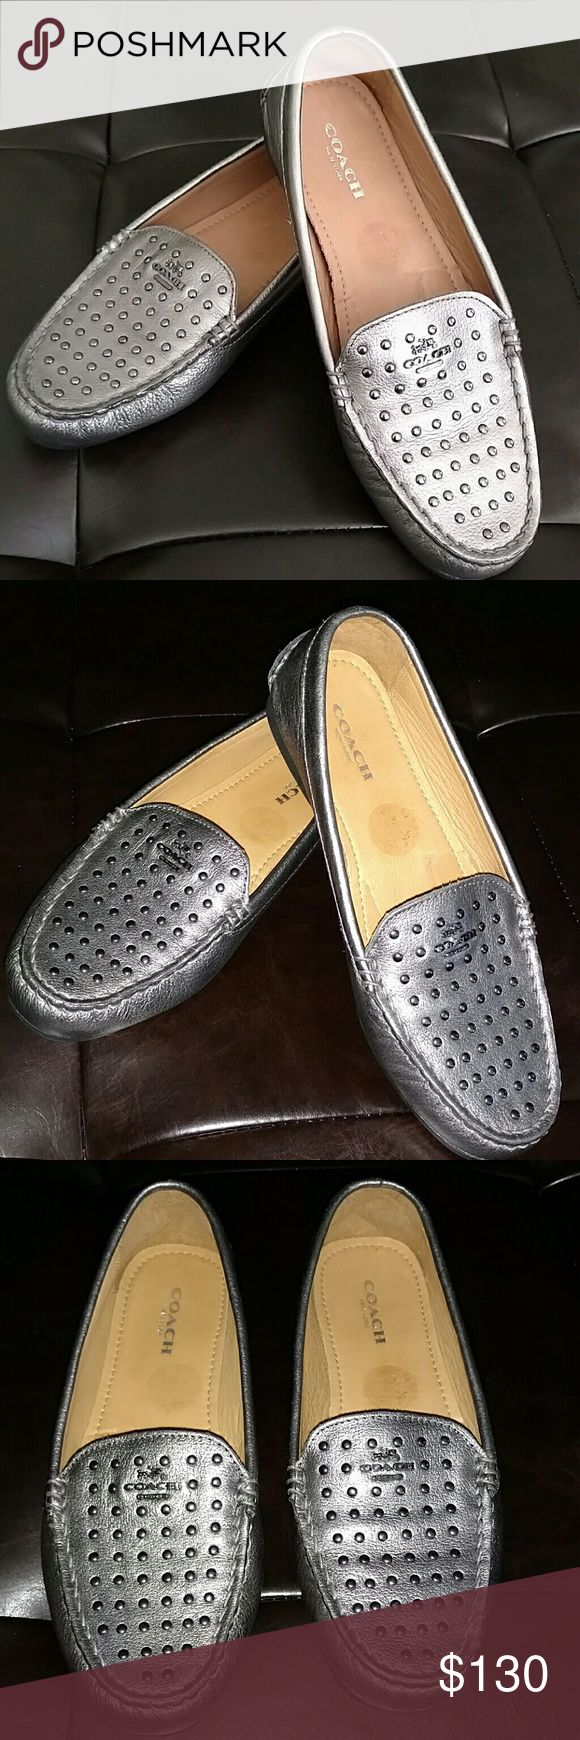 Coach Leather Gun Metal Studded Loafers Coach Leather Gun Metal Studded Loafers Slides Women's size 6B , No box no tags Floor model so wear from fitting . No blemishes aside from slight sticker adhesive reside insole. Coach Shoes Flats & Loafers